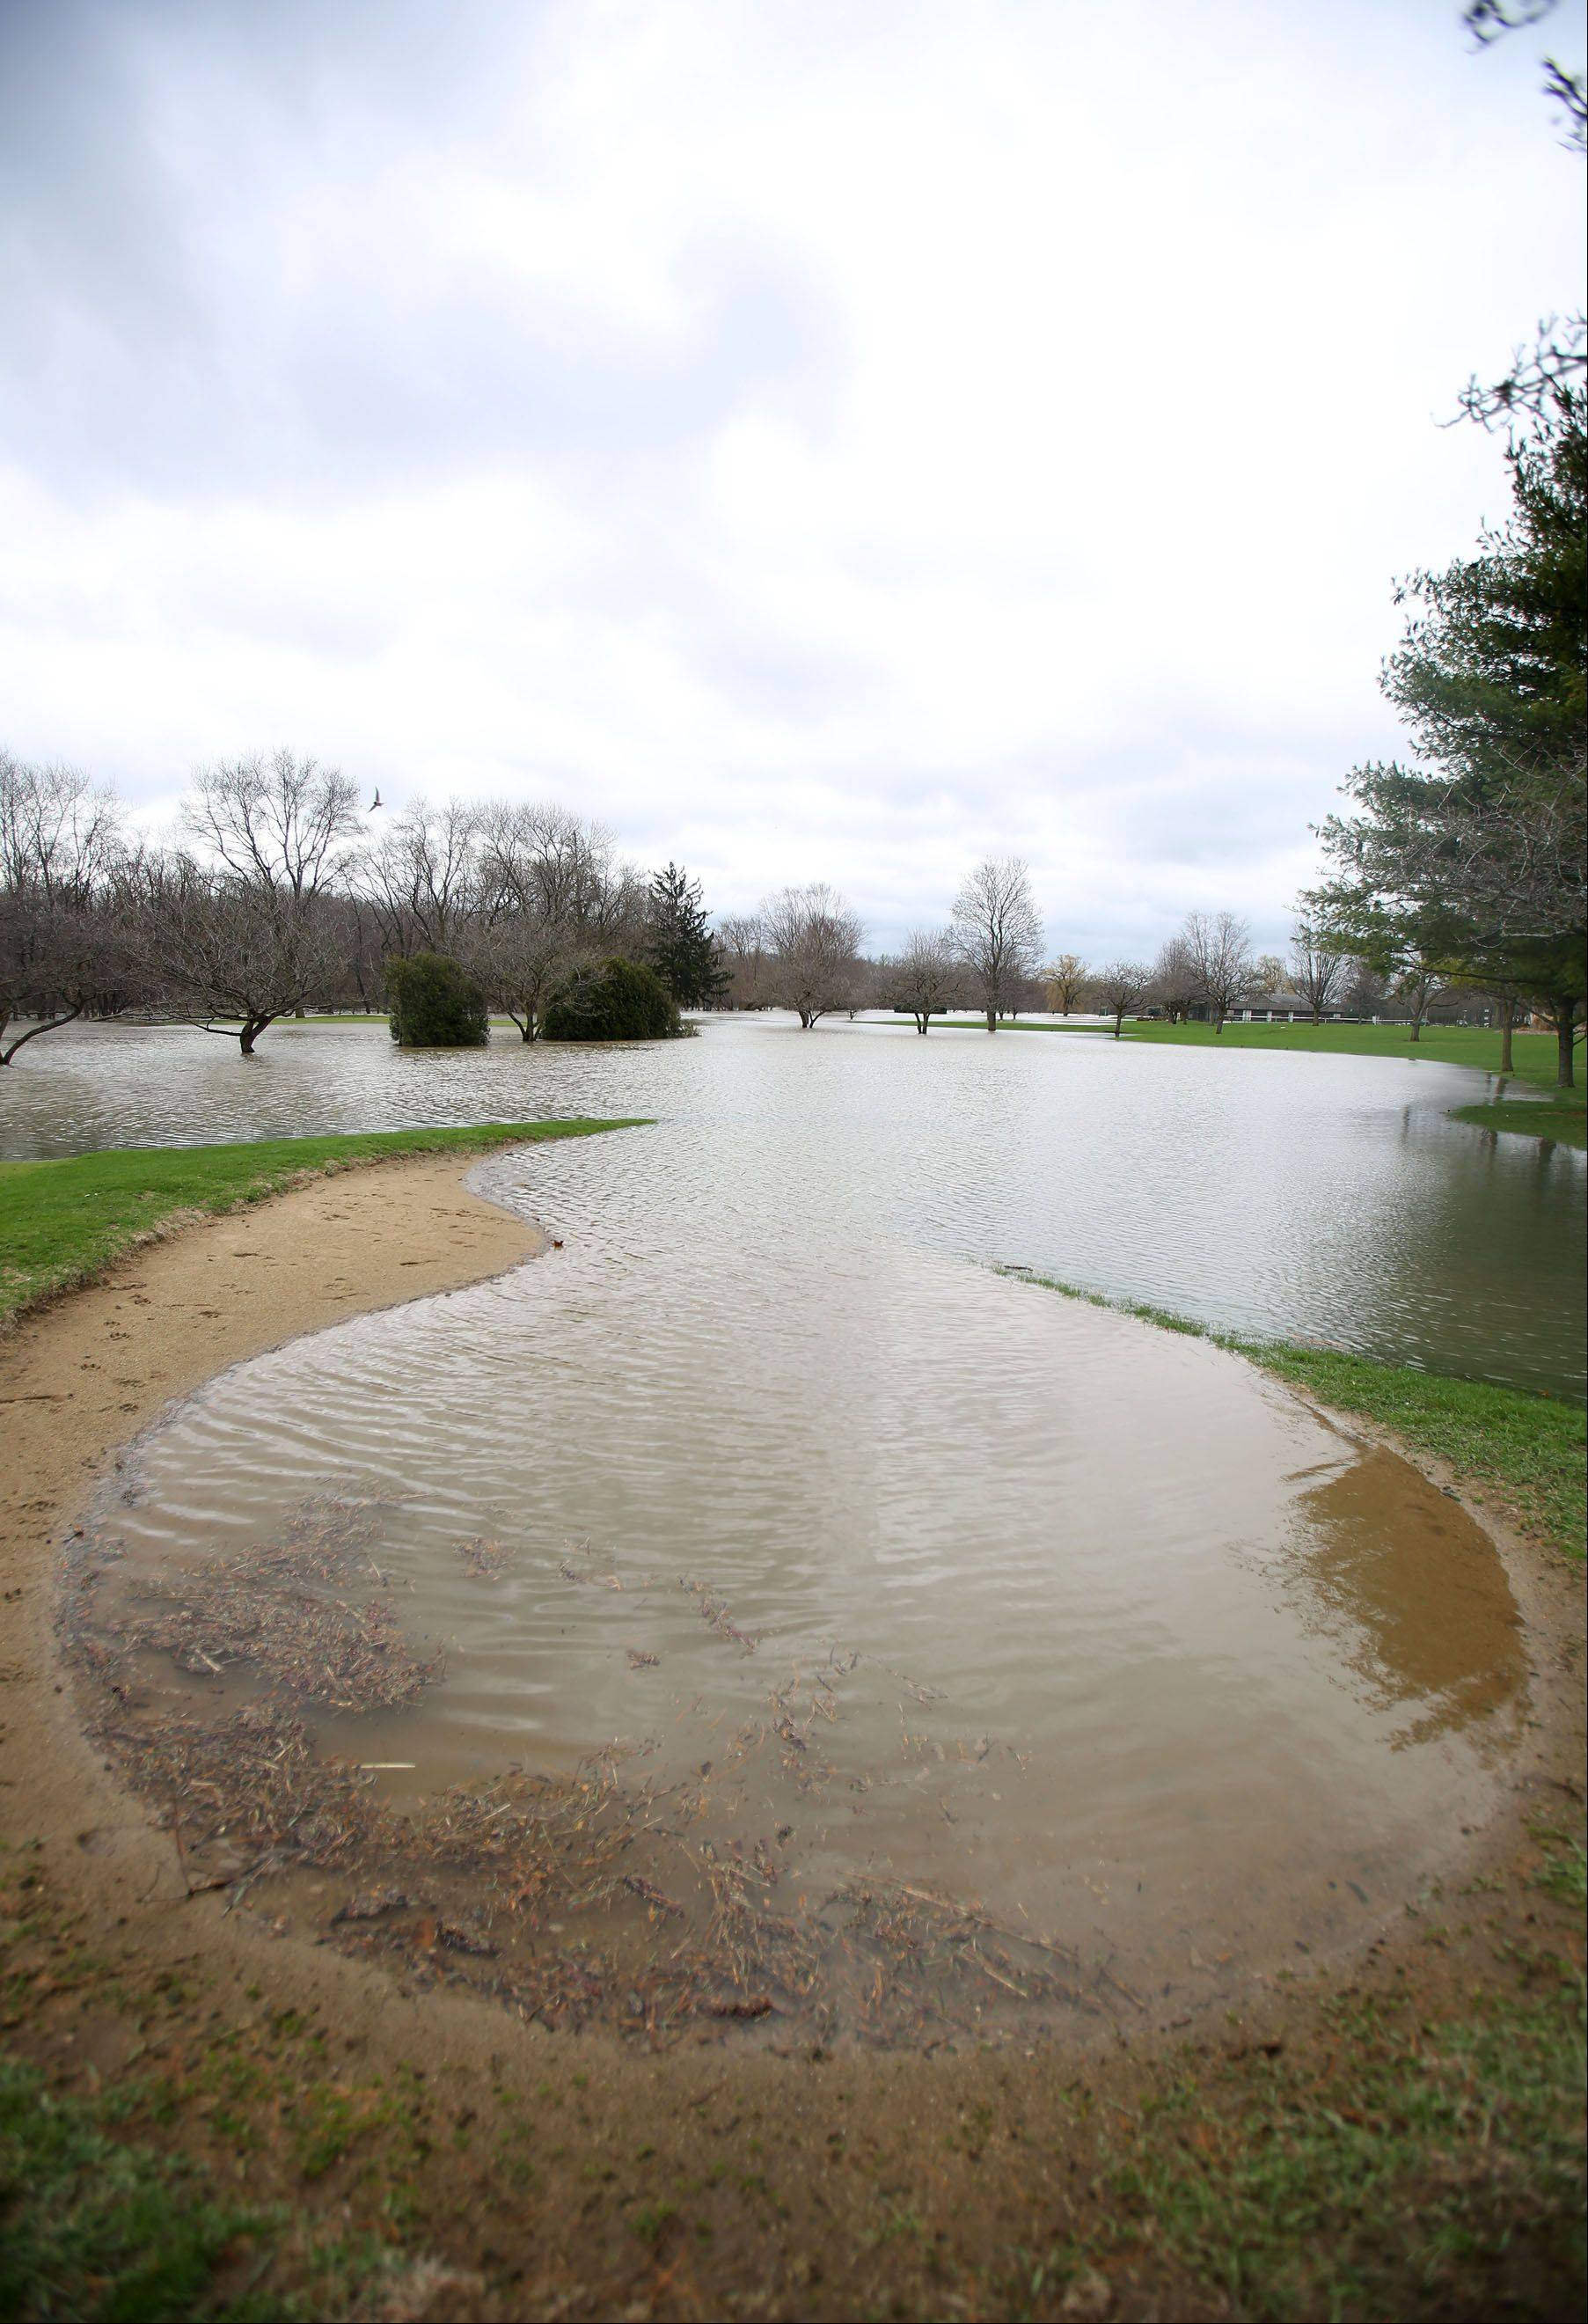 Synthetic turf delayed but Libertyville golf course set to reopen